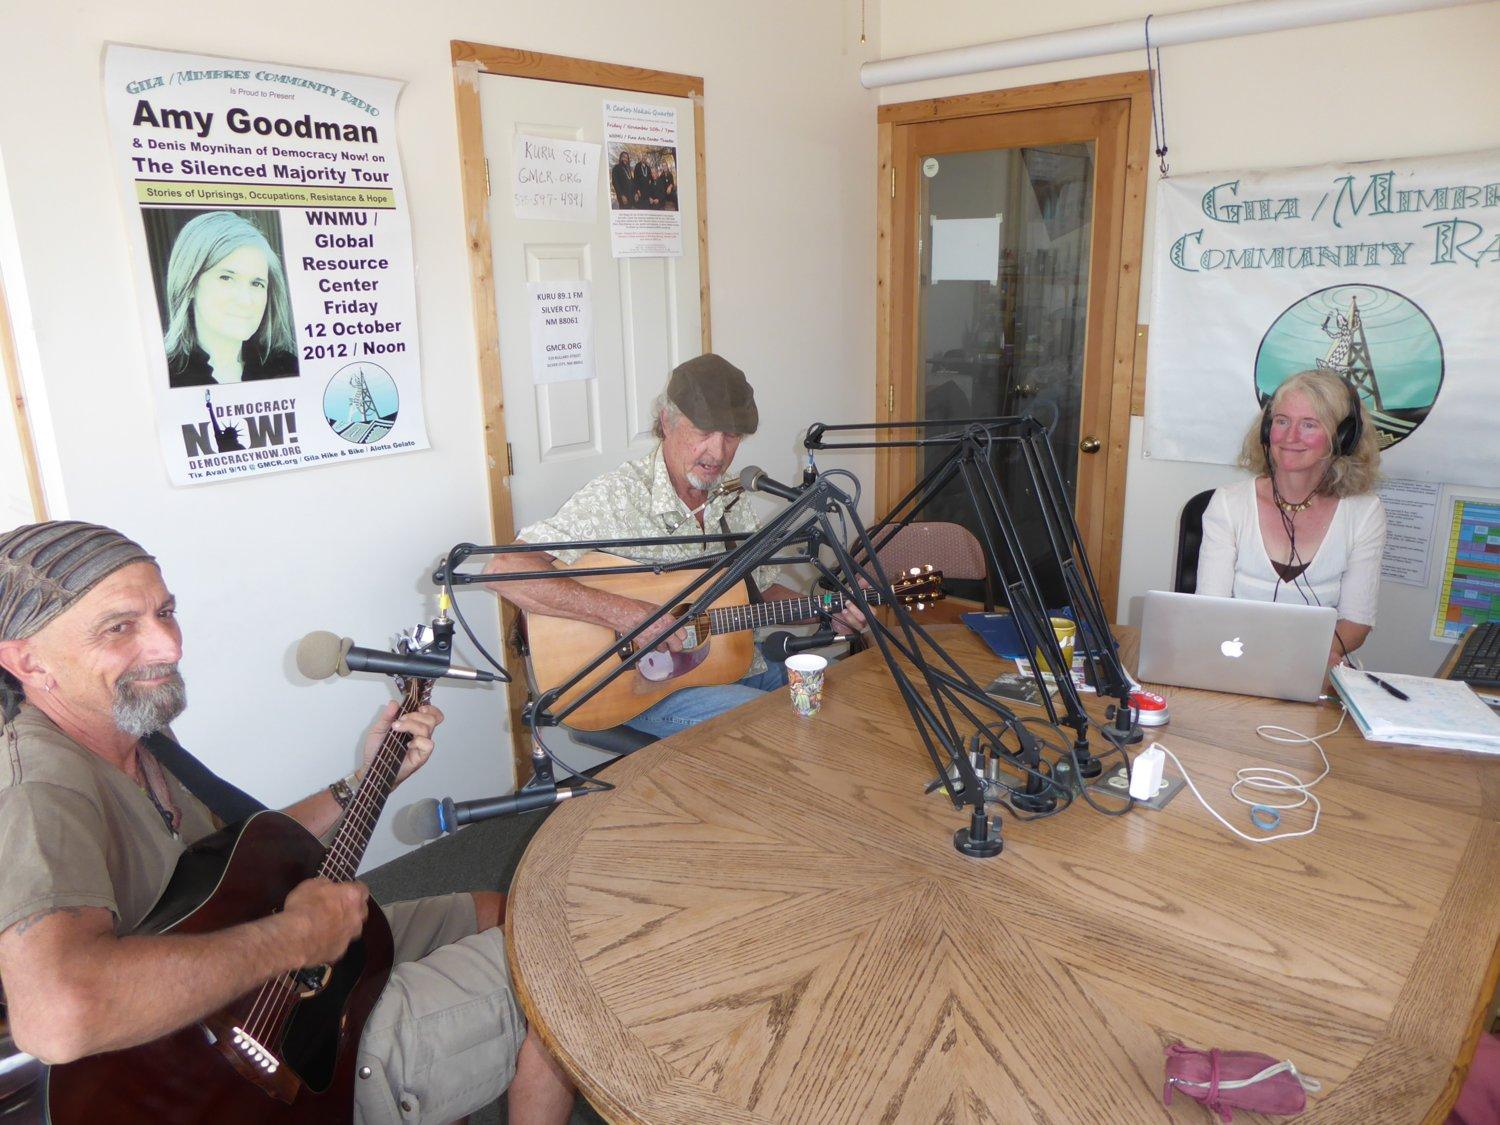 Tim Faust and Greg Renfro with Nan Franzblau at Gila Mimbres Community Radio (KURU) in Silver City during a 2018 fundraiser.